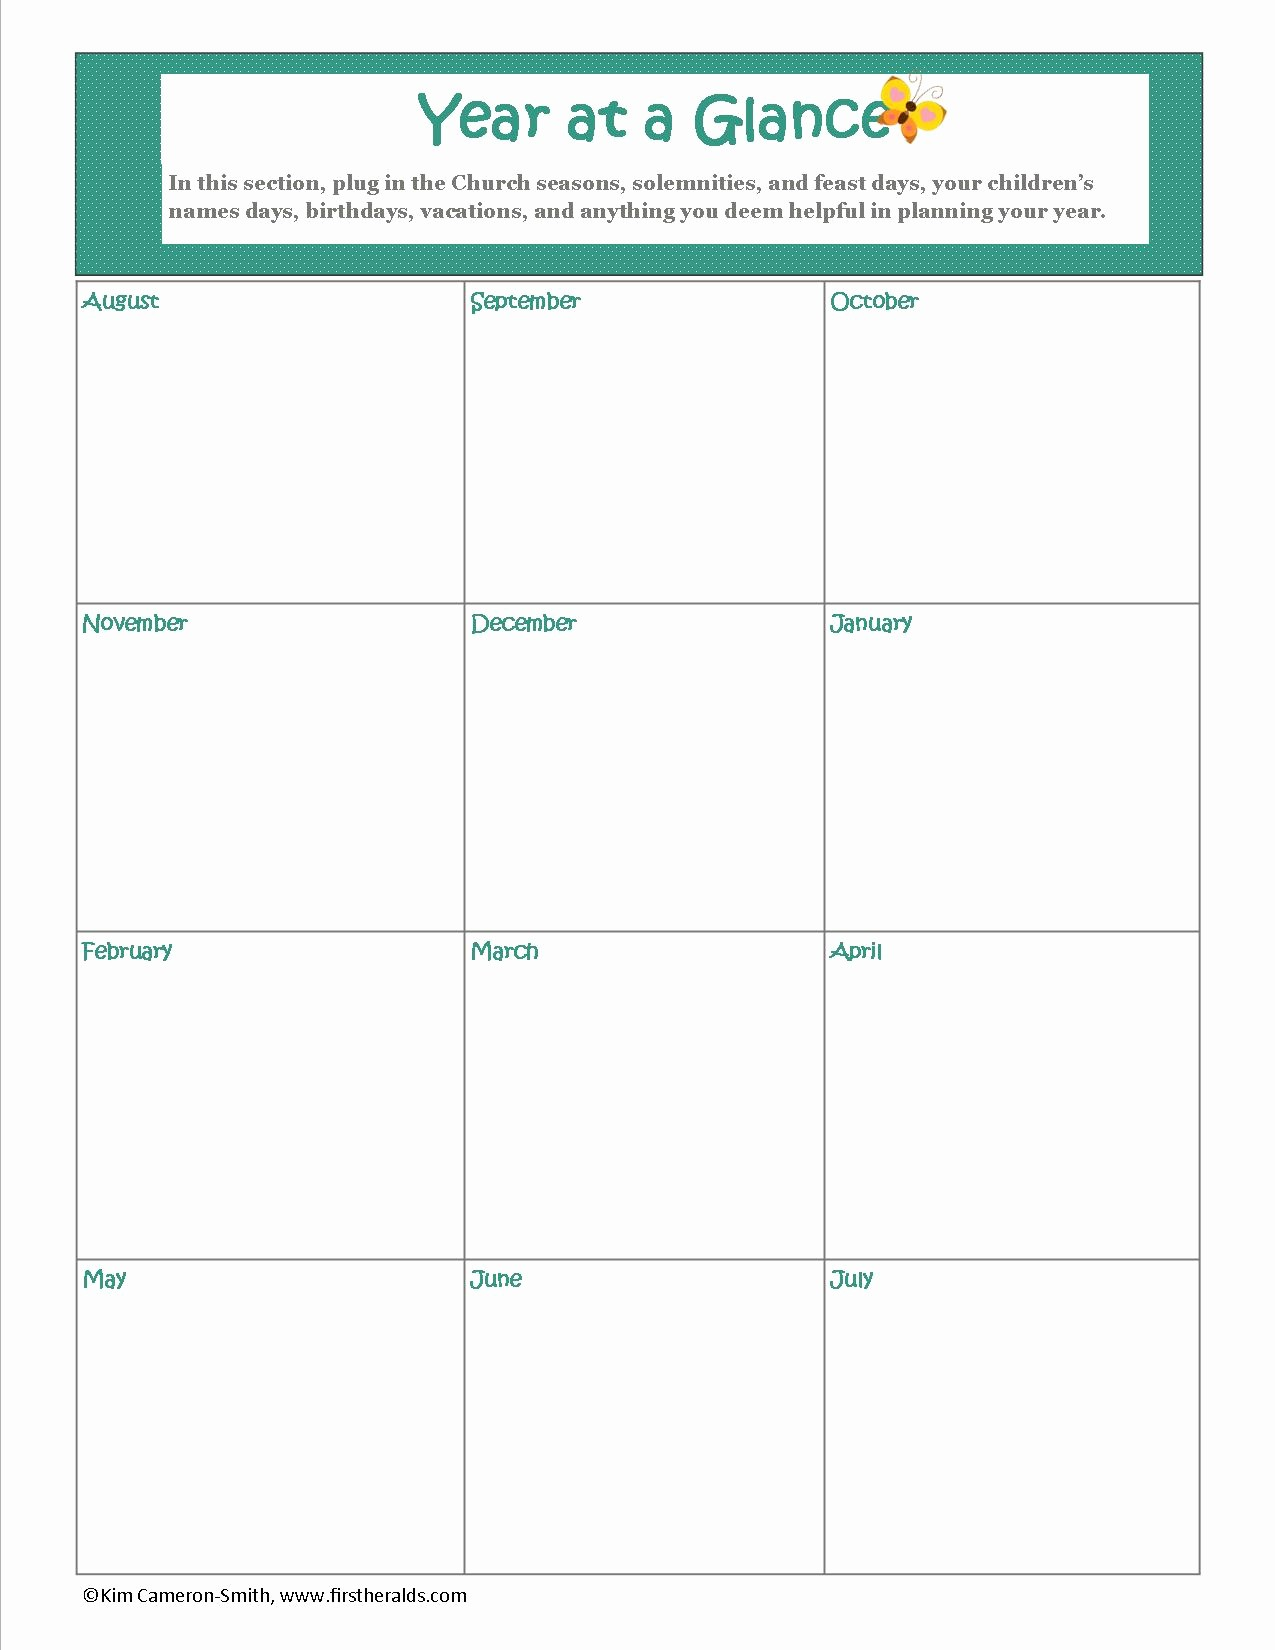 At A Glance Yearly Calendars Best Of Planning Our Homeschool Year